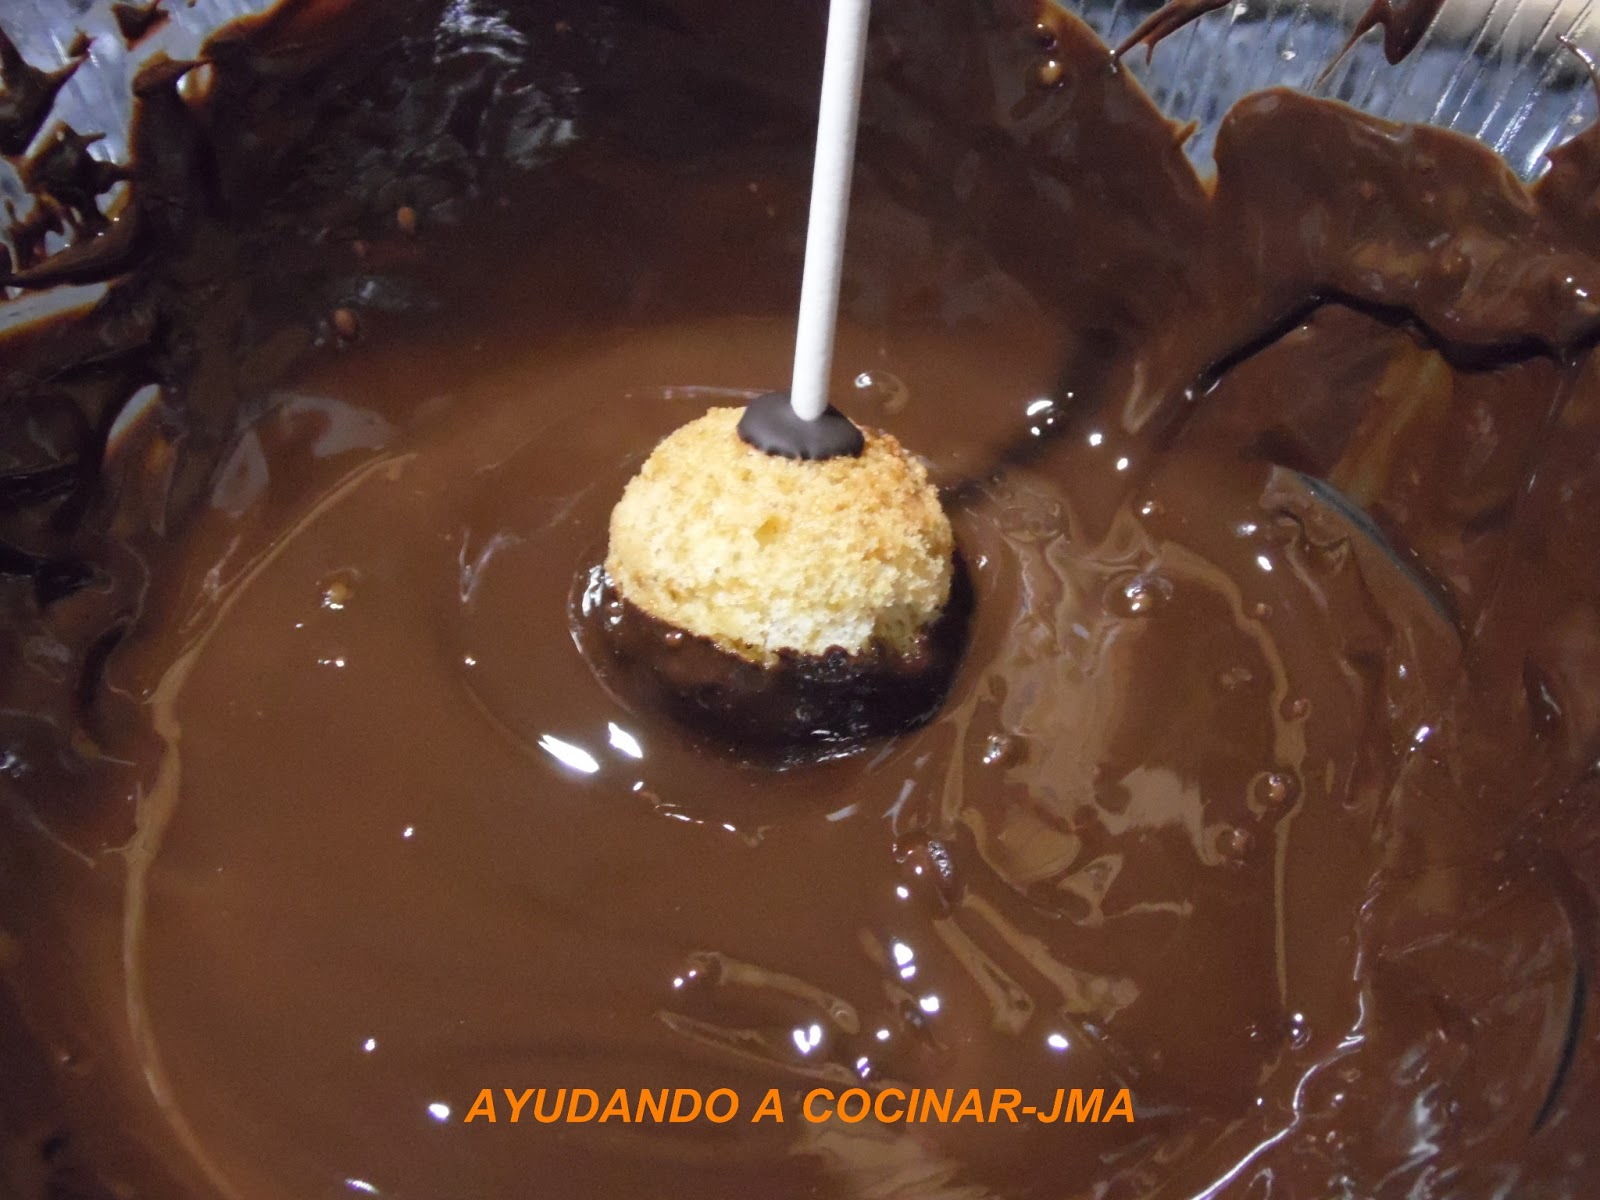 ayudando a cocinar popcake de chocolate y coco. Black Bedroom Furniture Sets. Home Design Ideas